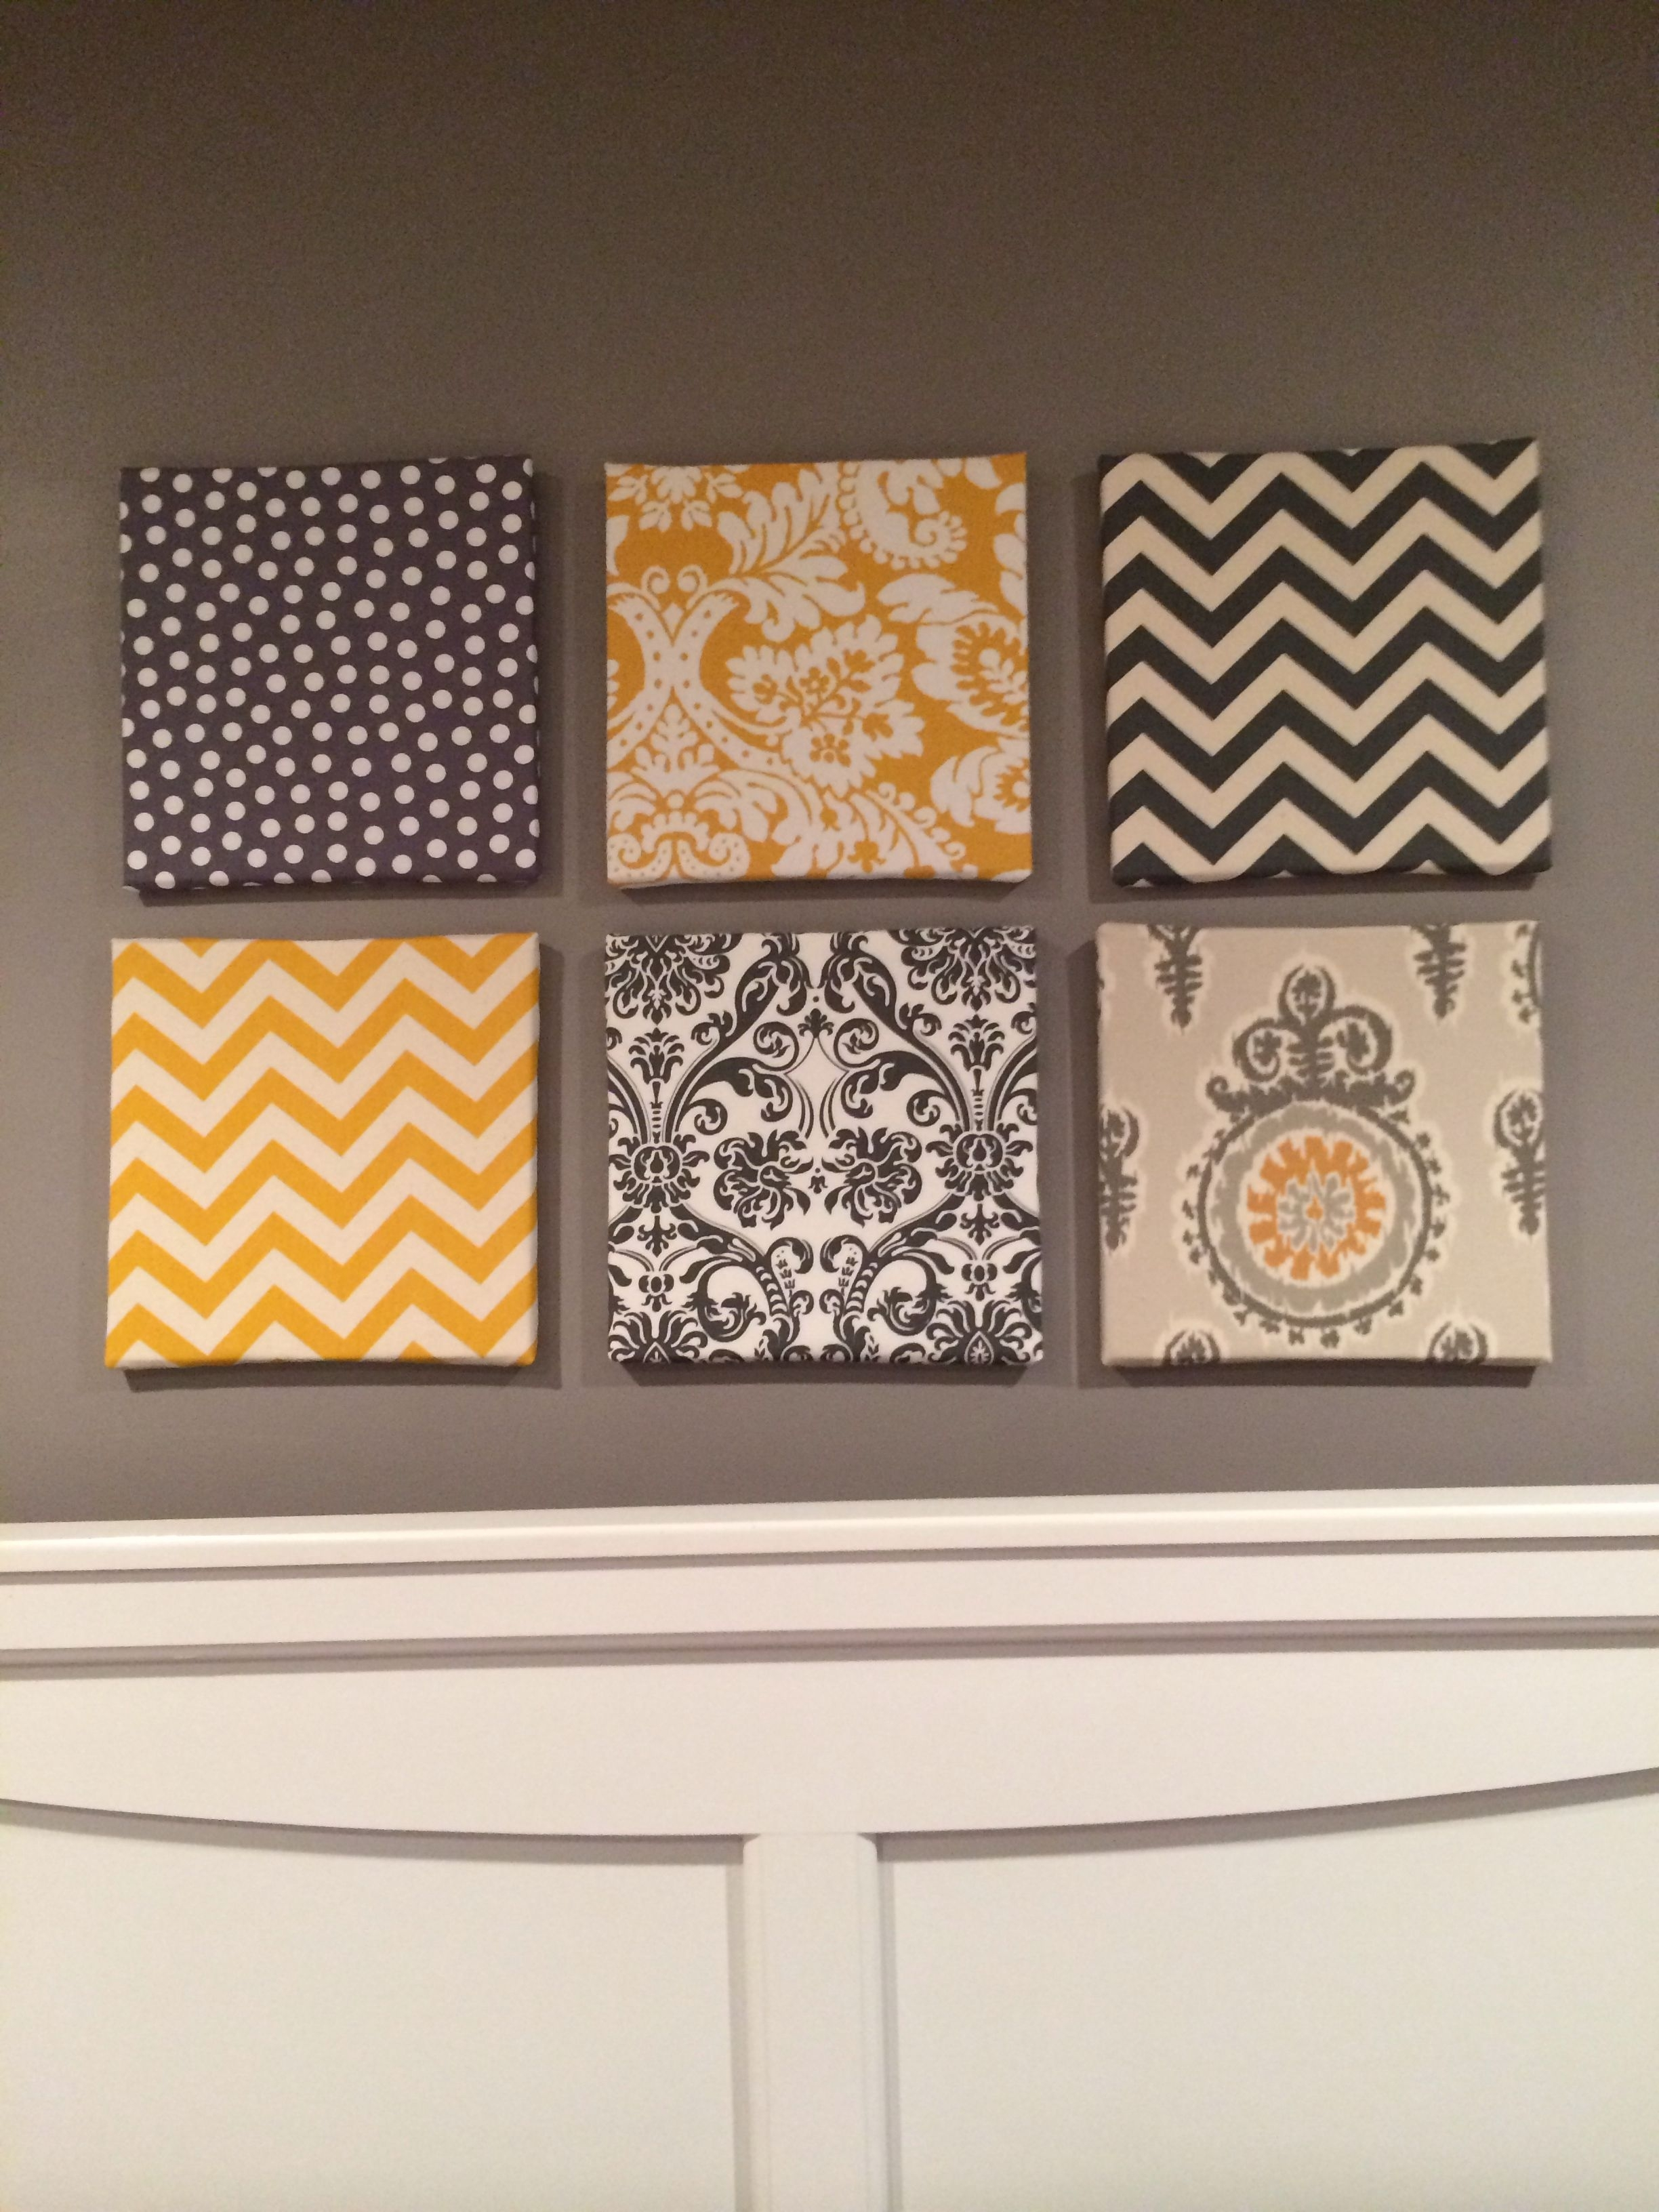 My Fabric Over Canvas Wall Art For My Gray And Yellow Themed Room Throughout Latest High End Fabric Wall Art (View 7 of 15)